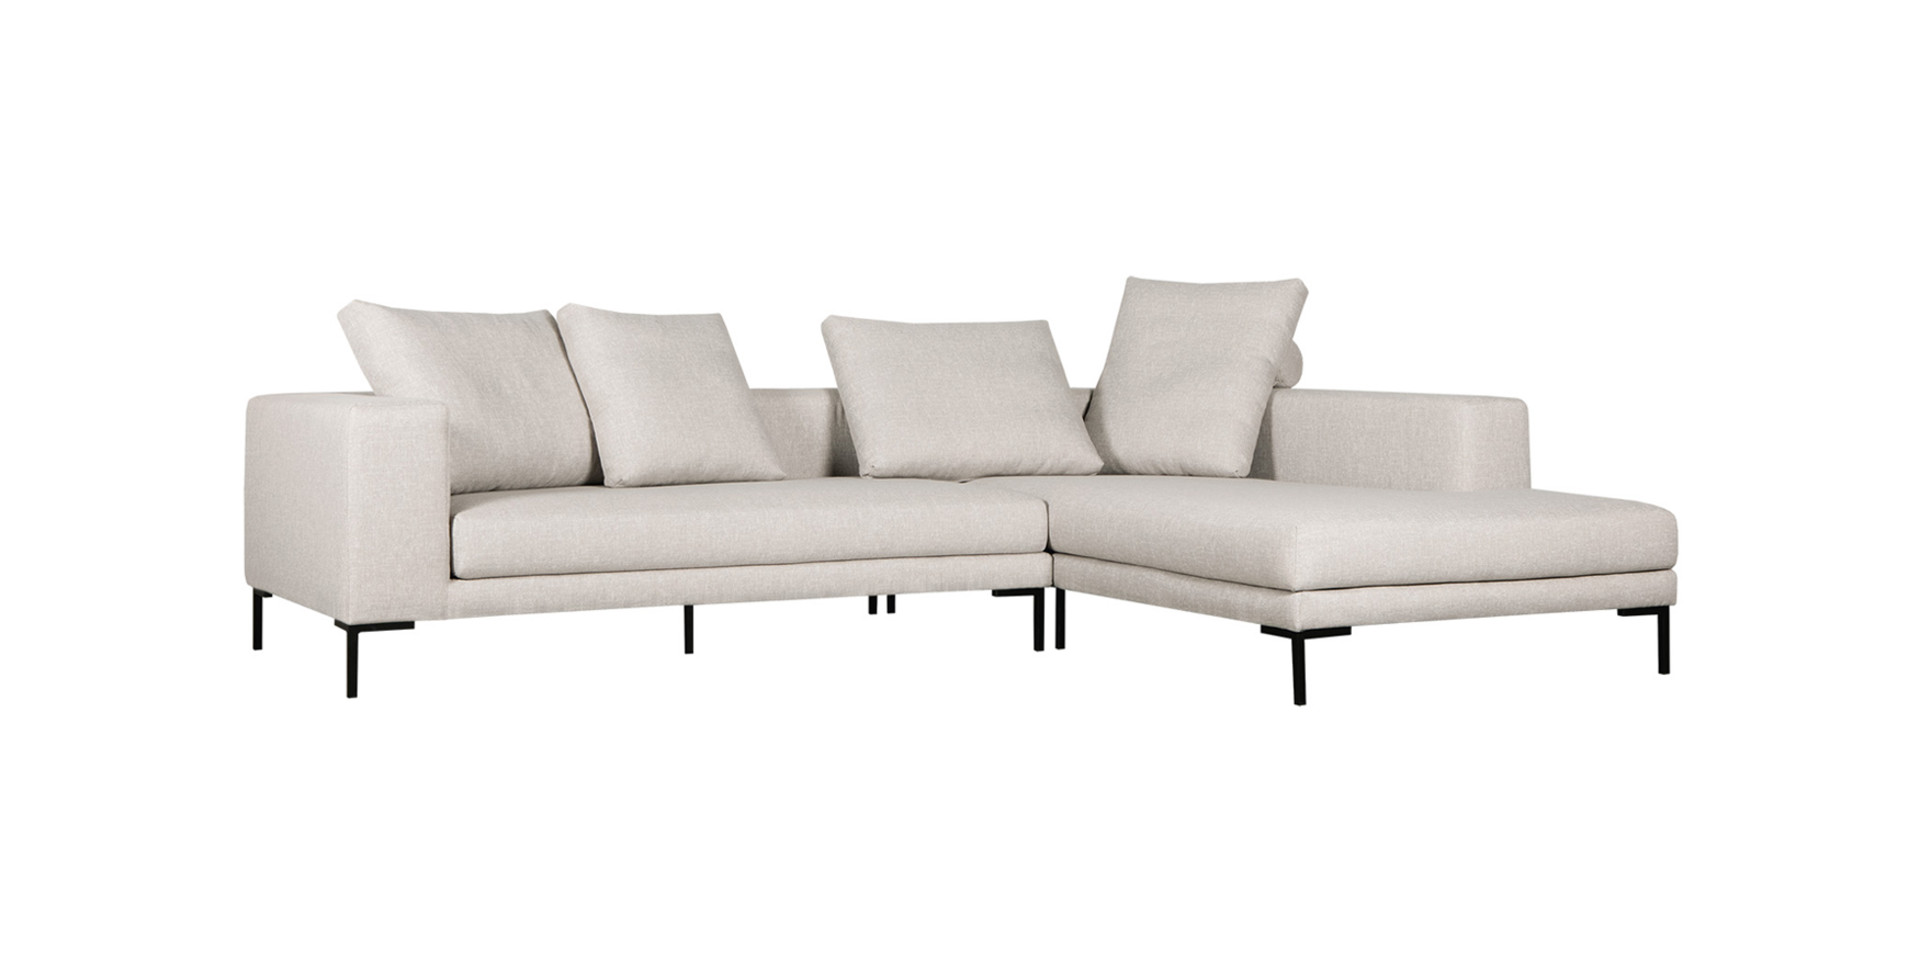 sits-linnea-angle-set2_nancy5_light_grey_2